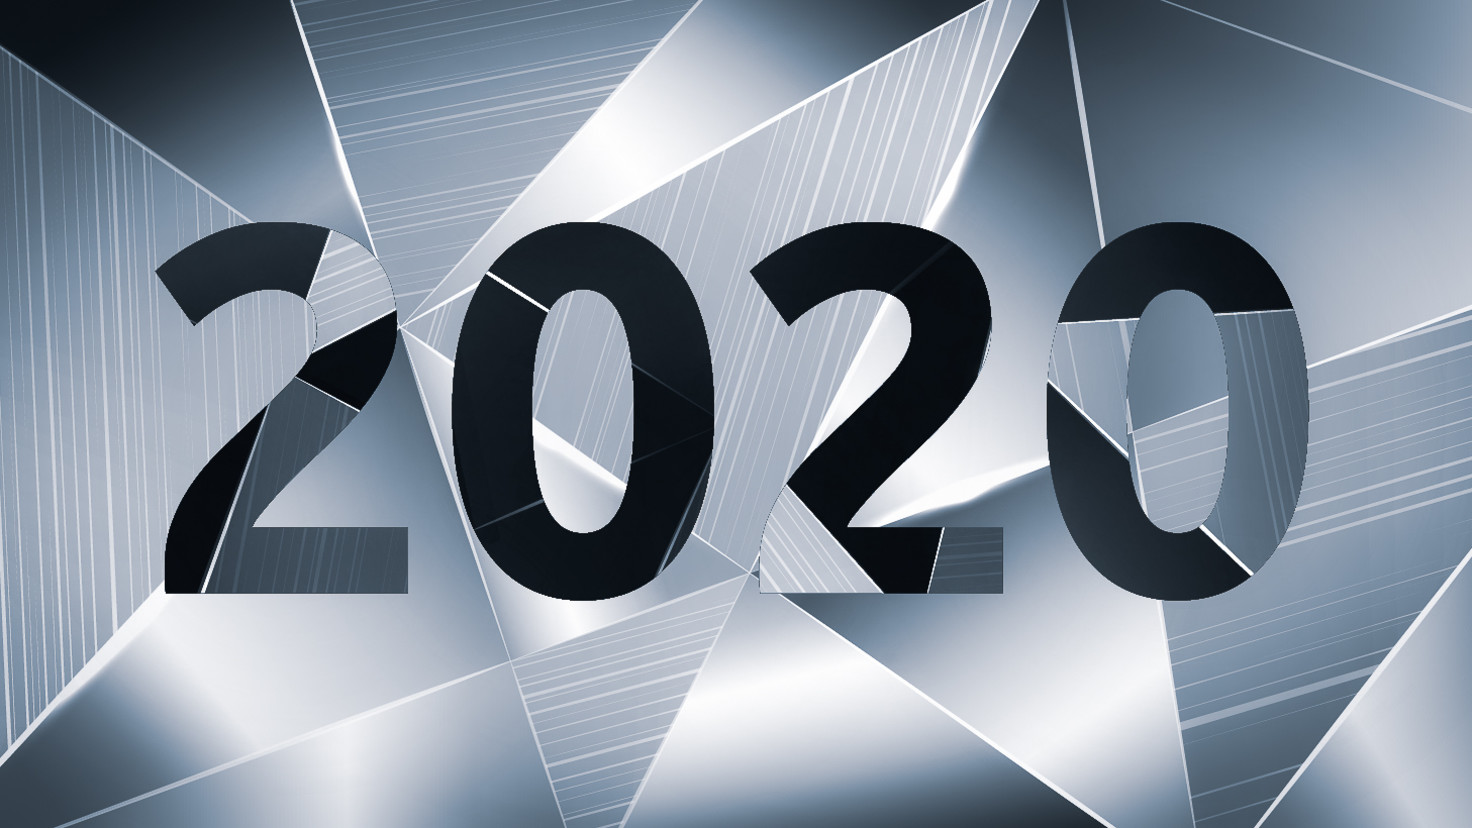 Platinum Price Prediction For 2020 And